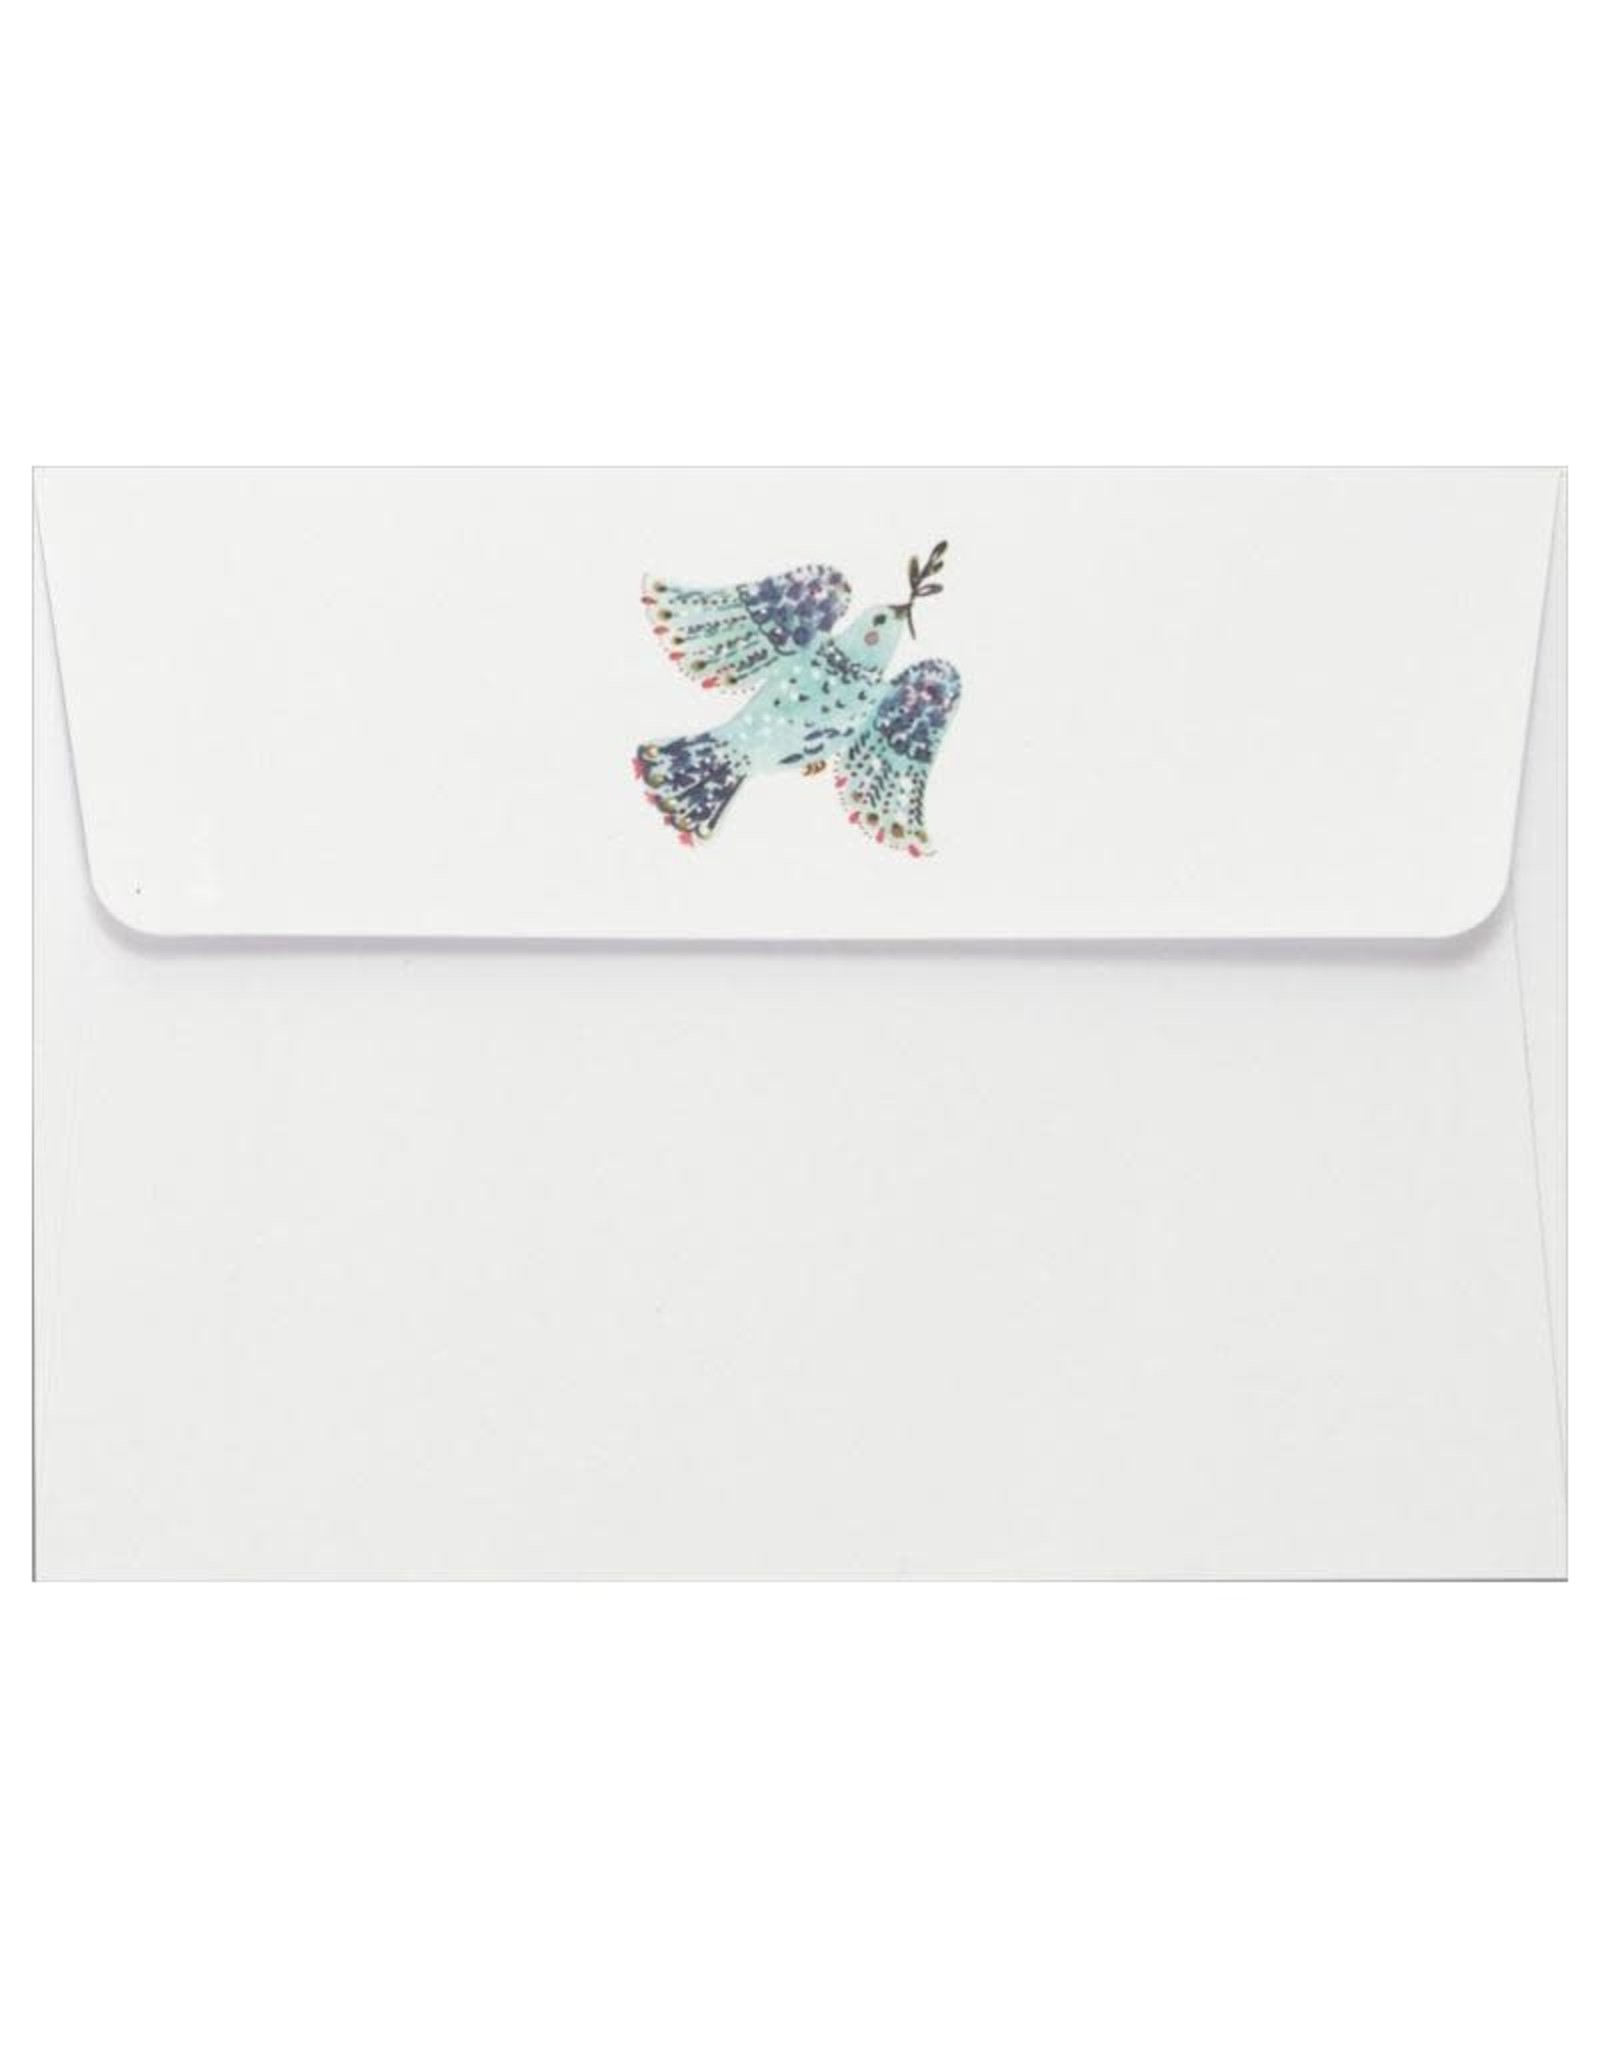 Peter Pauper Dove with Mistletoe Boxed Holiday Cards